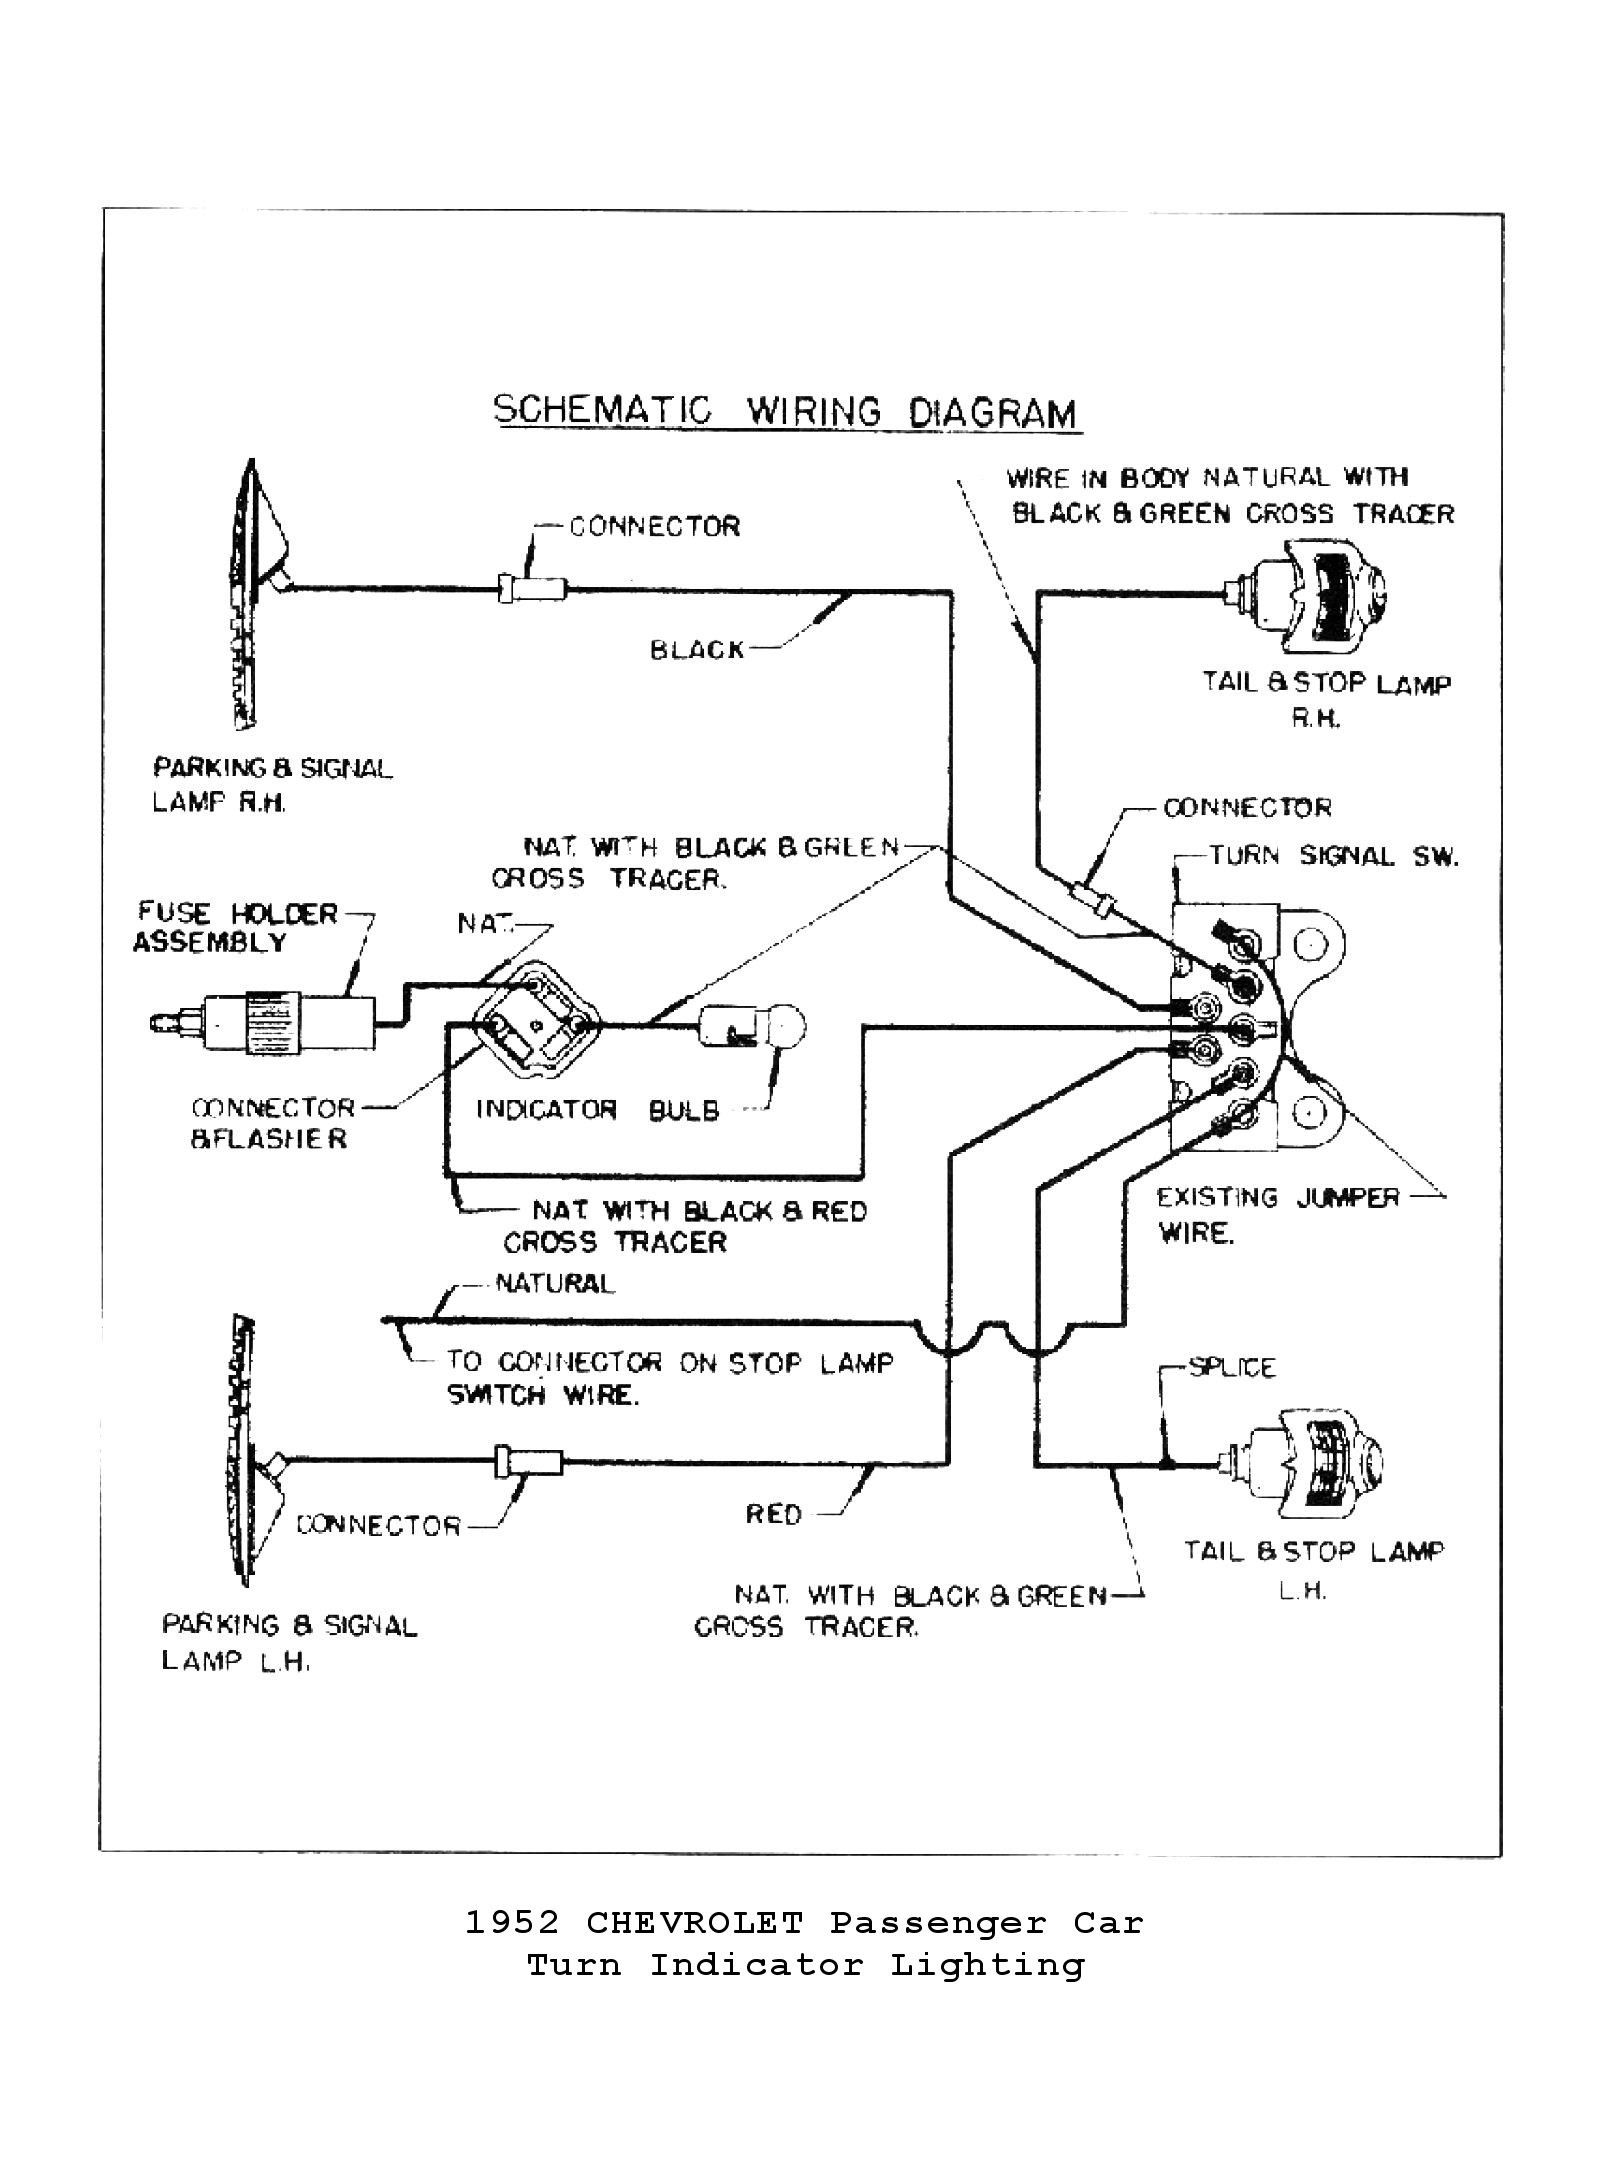 1955 chevy turn signal wiring diagram sample wiring diagram sample rh faceitsalon com